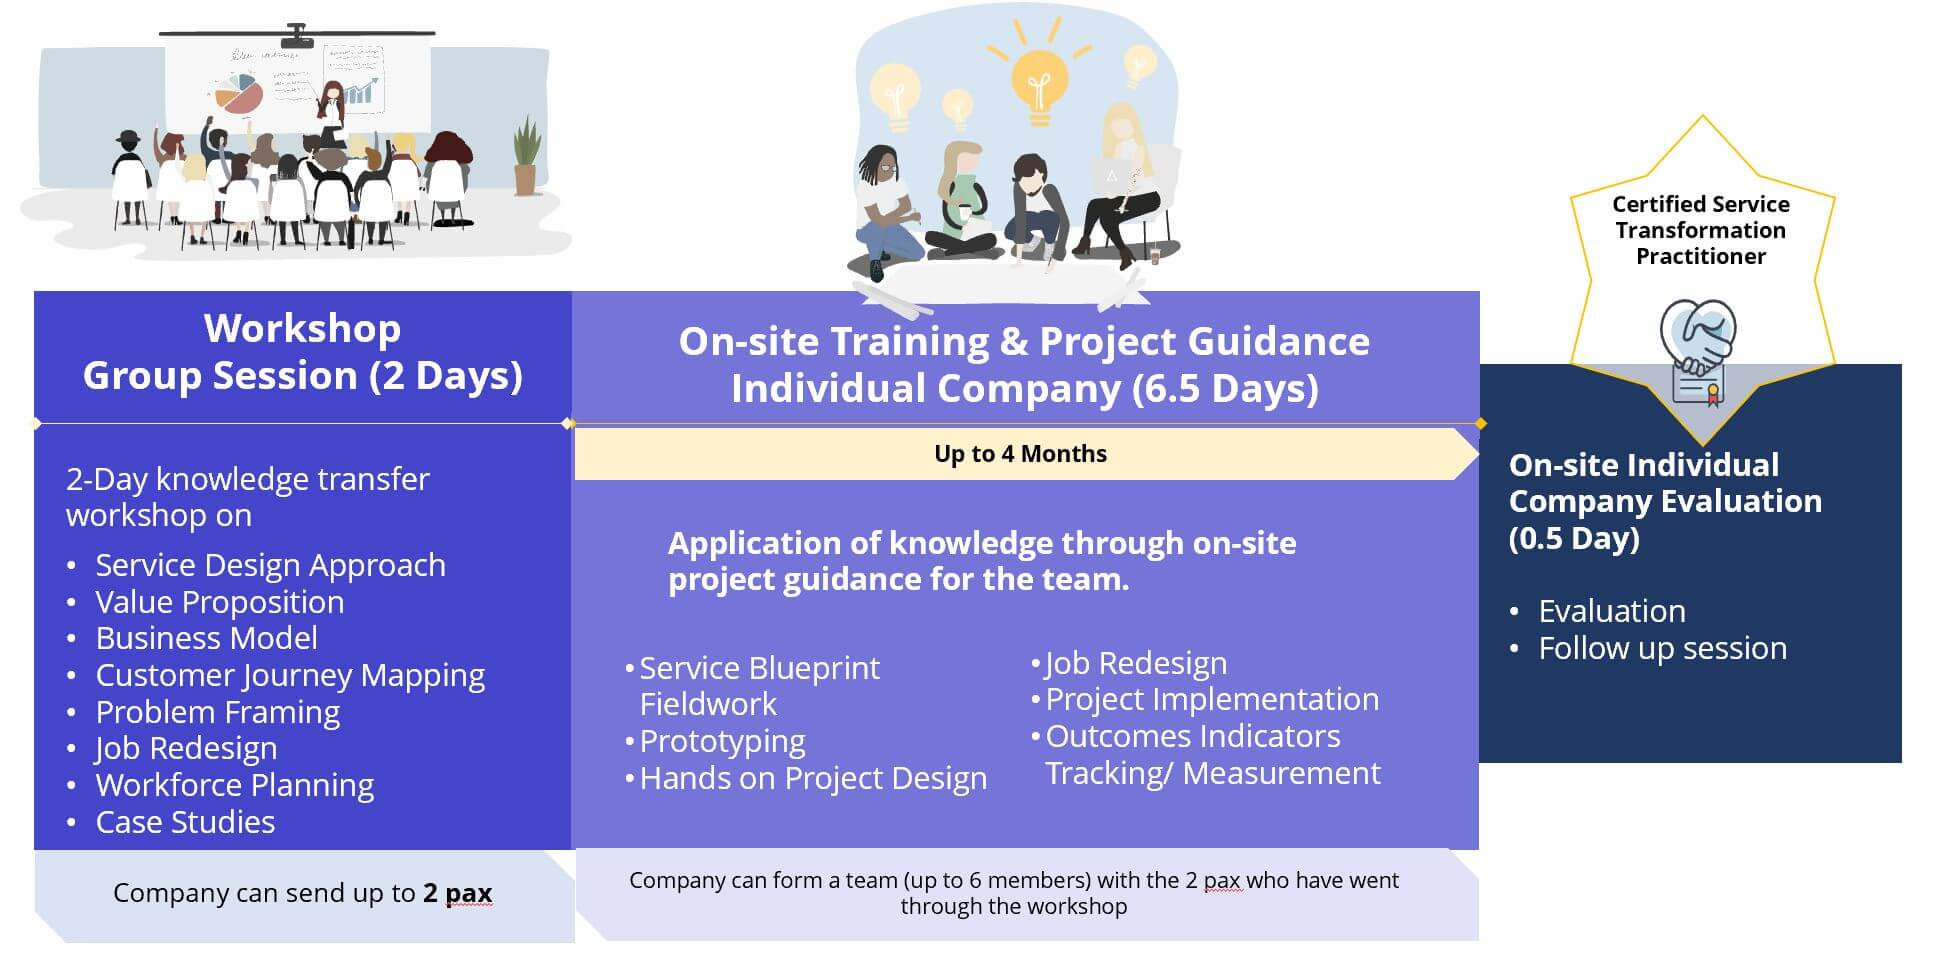 Certified Service Transformation Practitioner